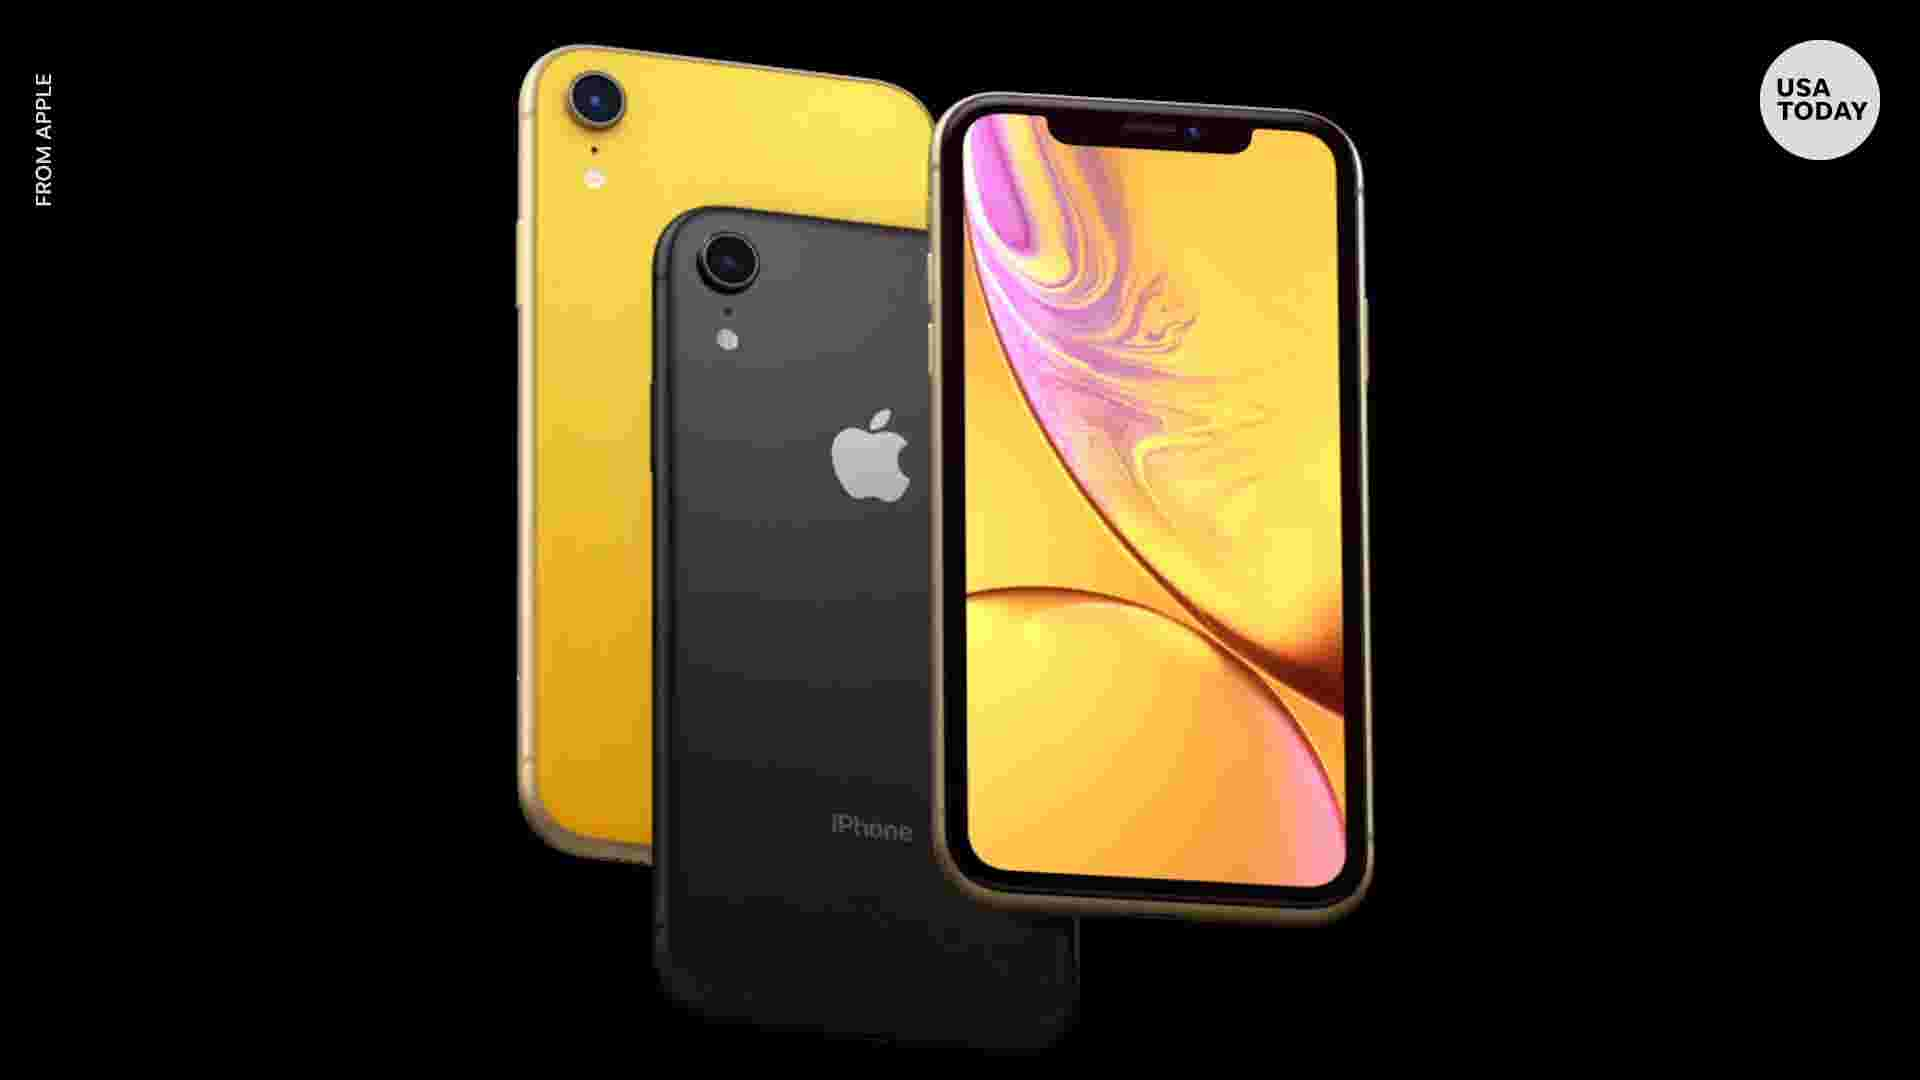 Iphone Xr Vs Xs A Review Of The Differences Between The Two Models